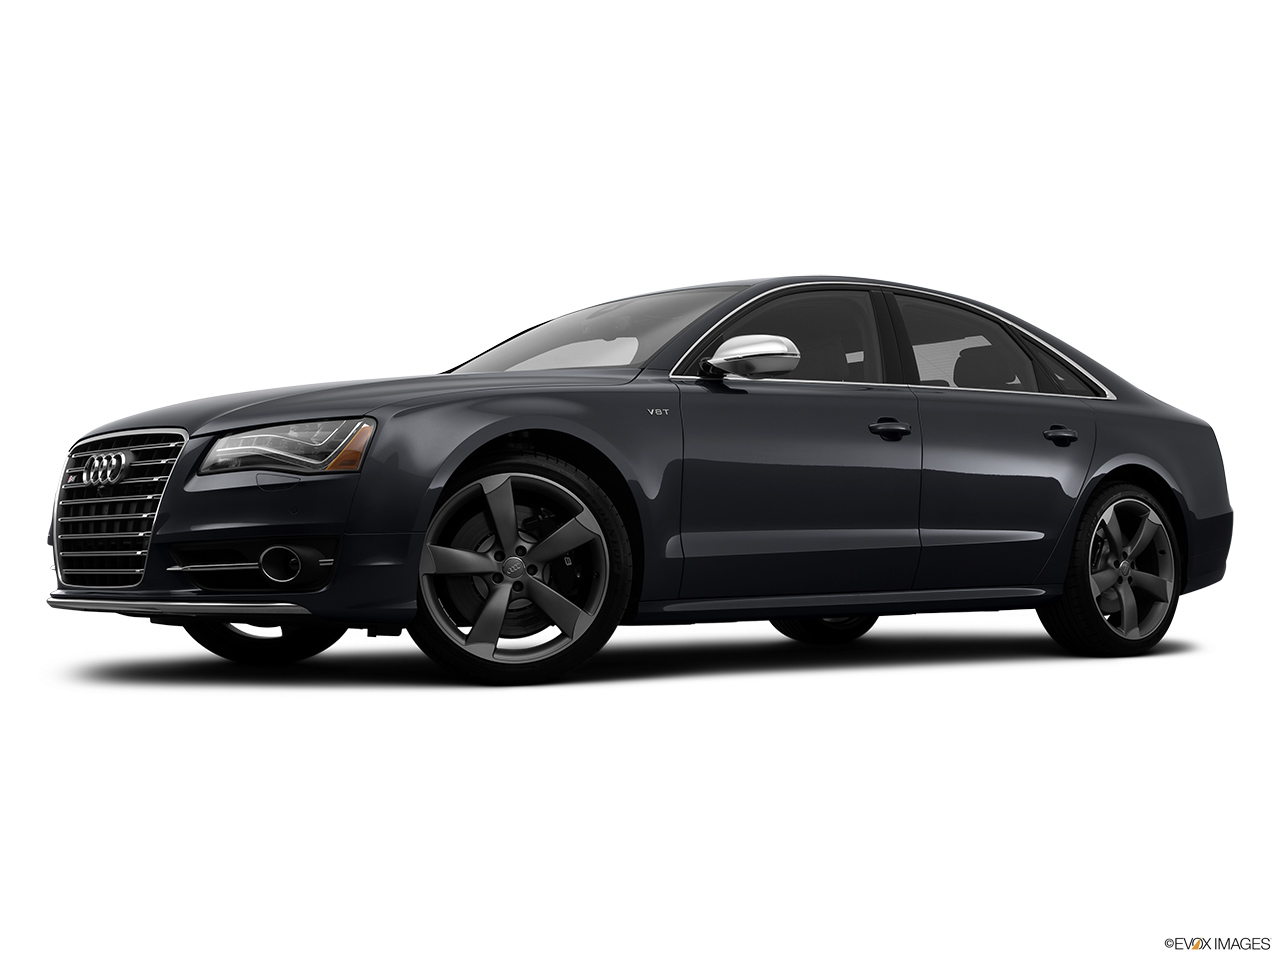 2014 Audi S8 4.0 TFSI Low/wide front 5/8.